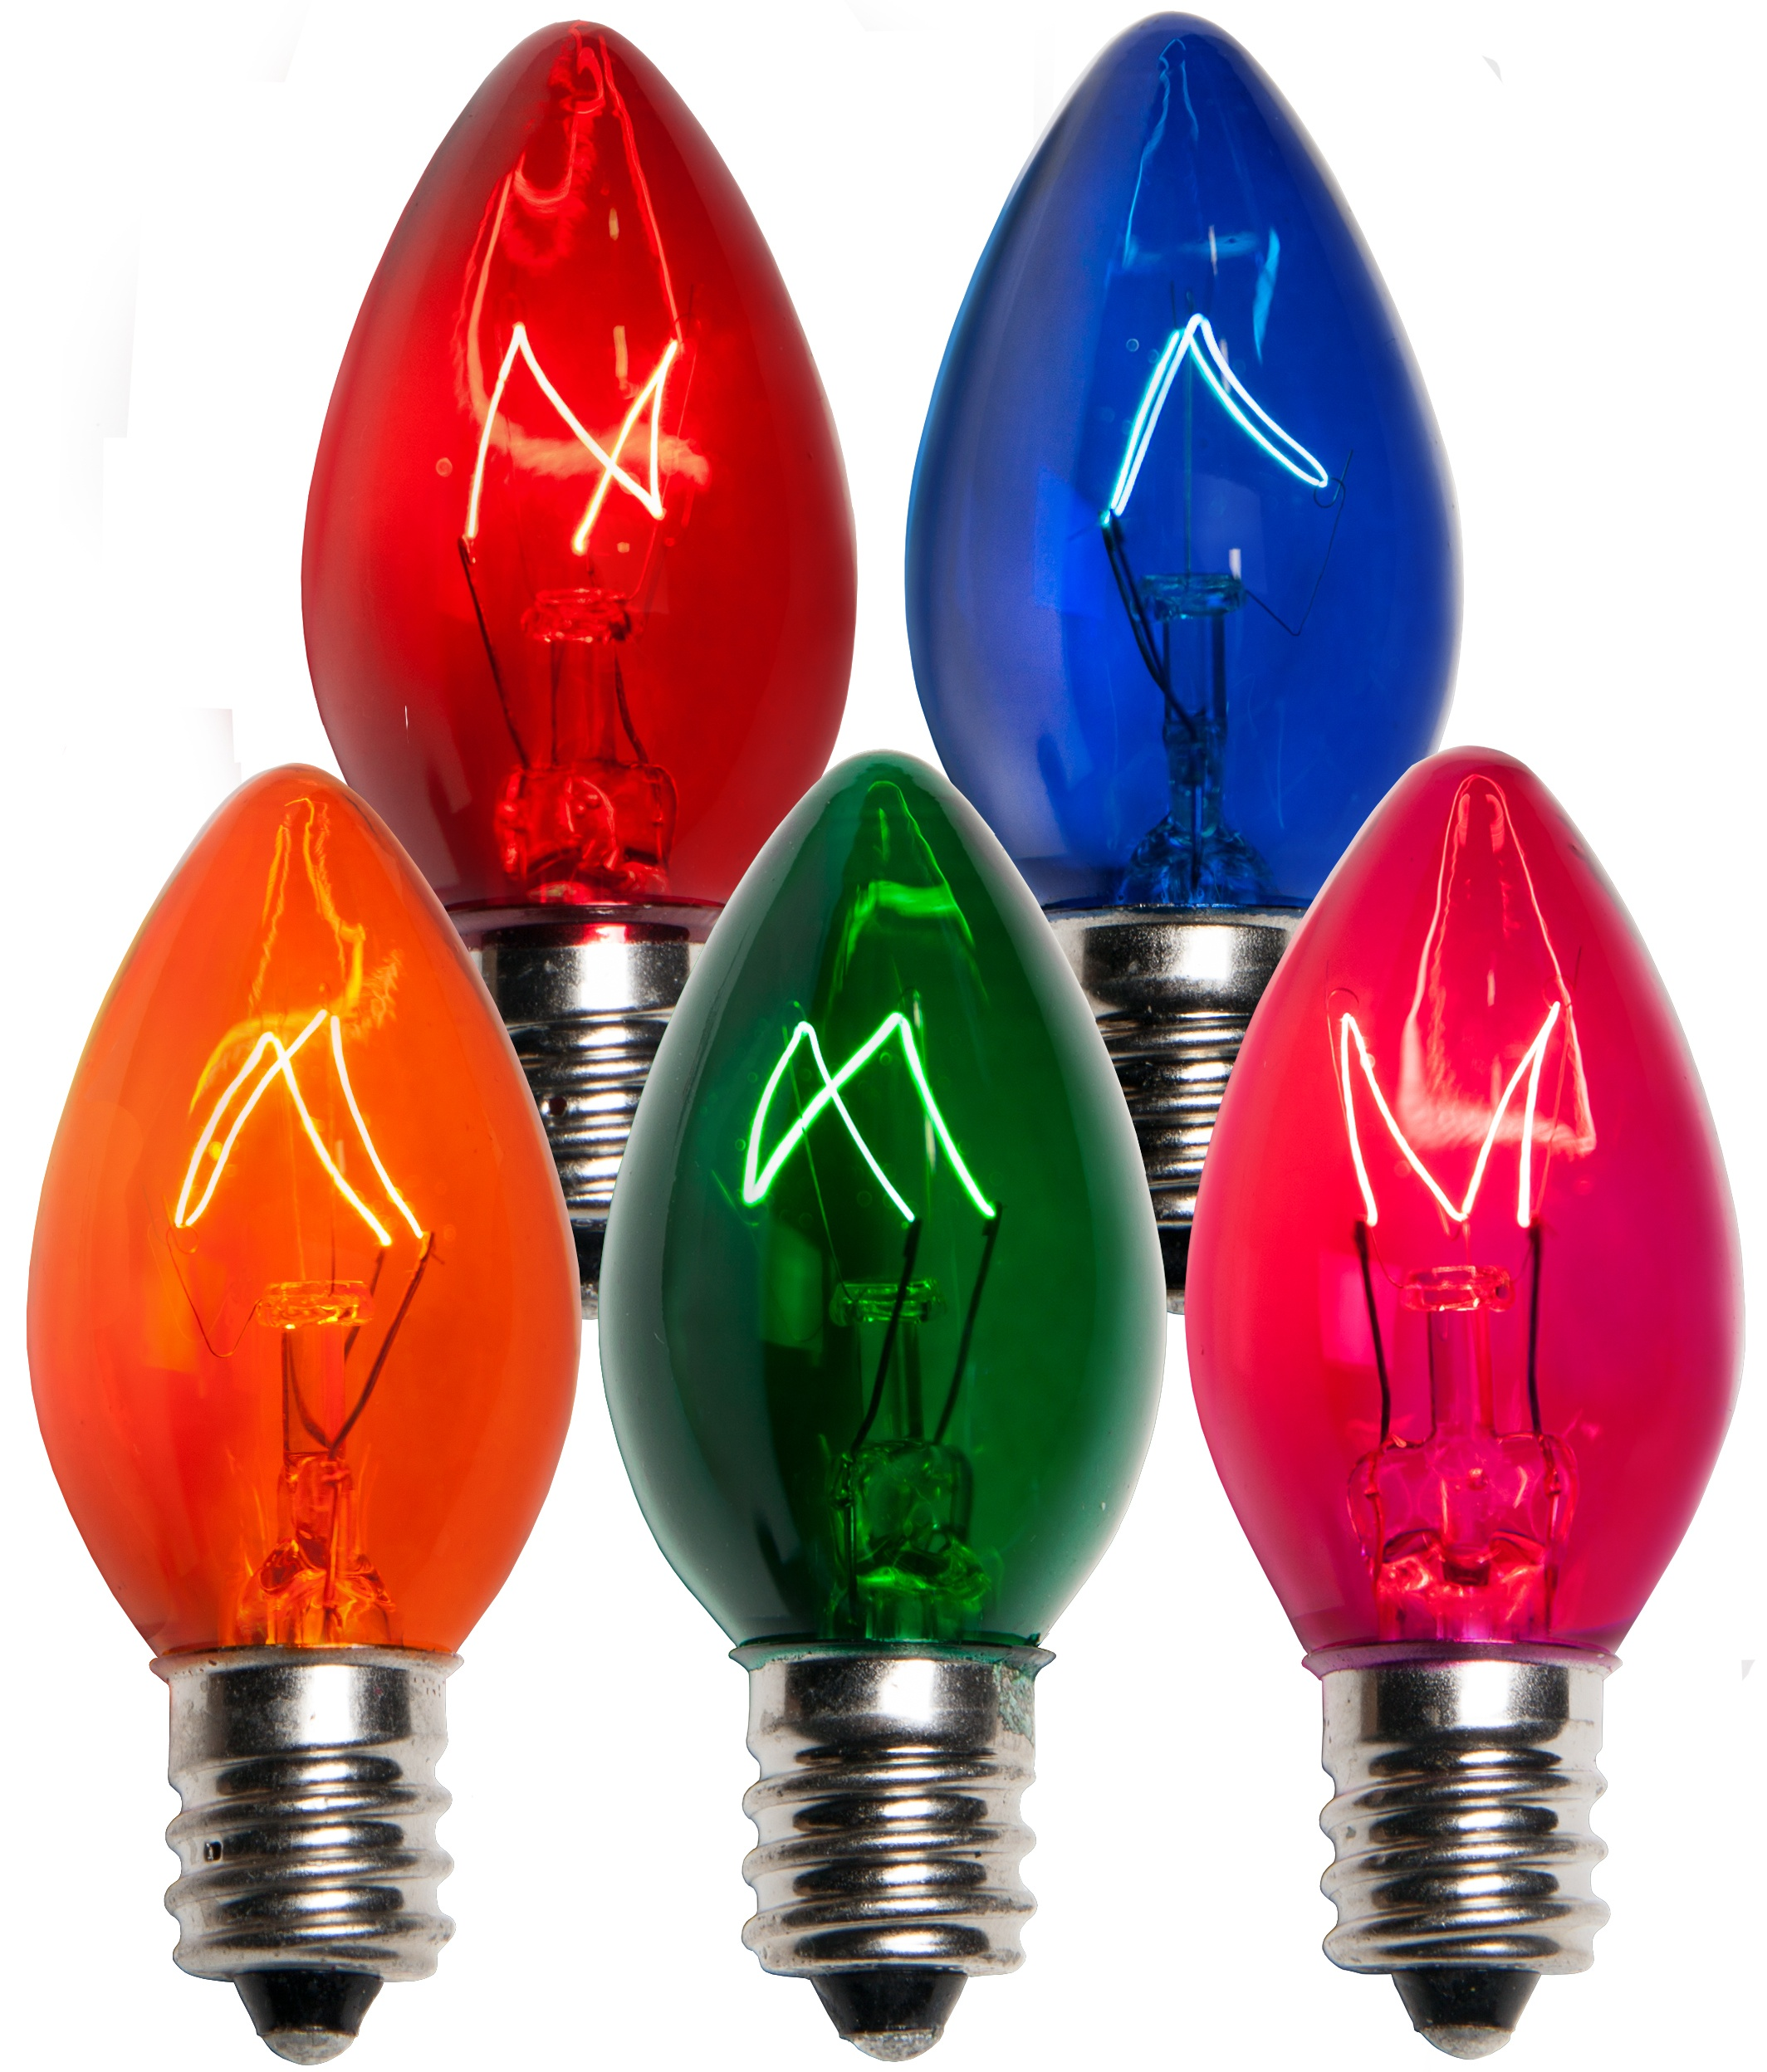 C7 Christmas Bulbs